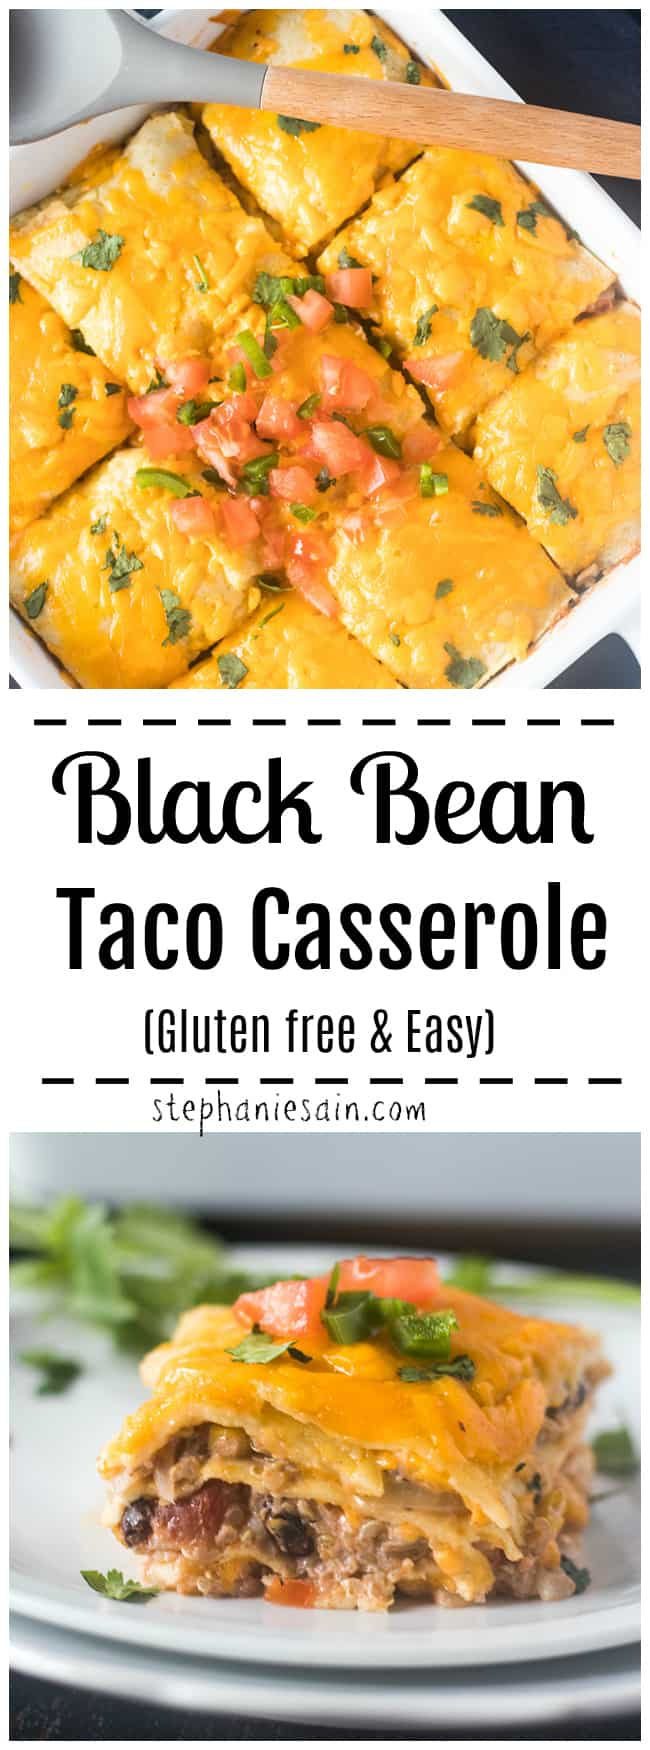 This Taco Casserole is made with black beans, corn, and taco seasonings for an easy tasty one pan dinner. Layered tortillas between taco filling and topped with cheese. Gluten Free, Vegetarian, Easy